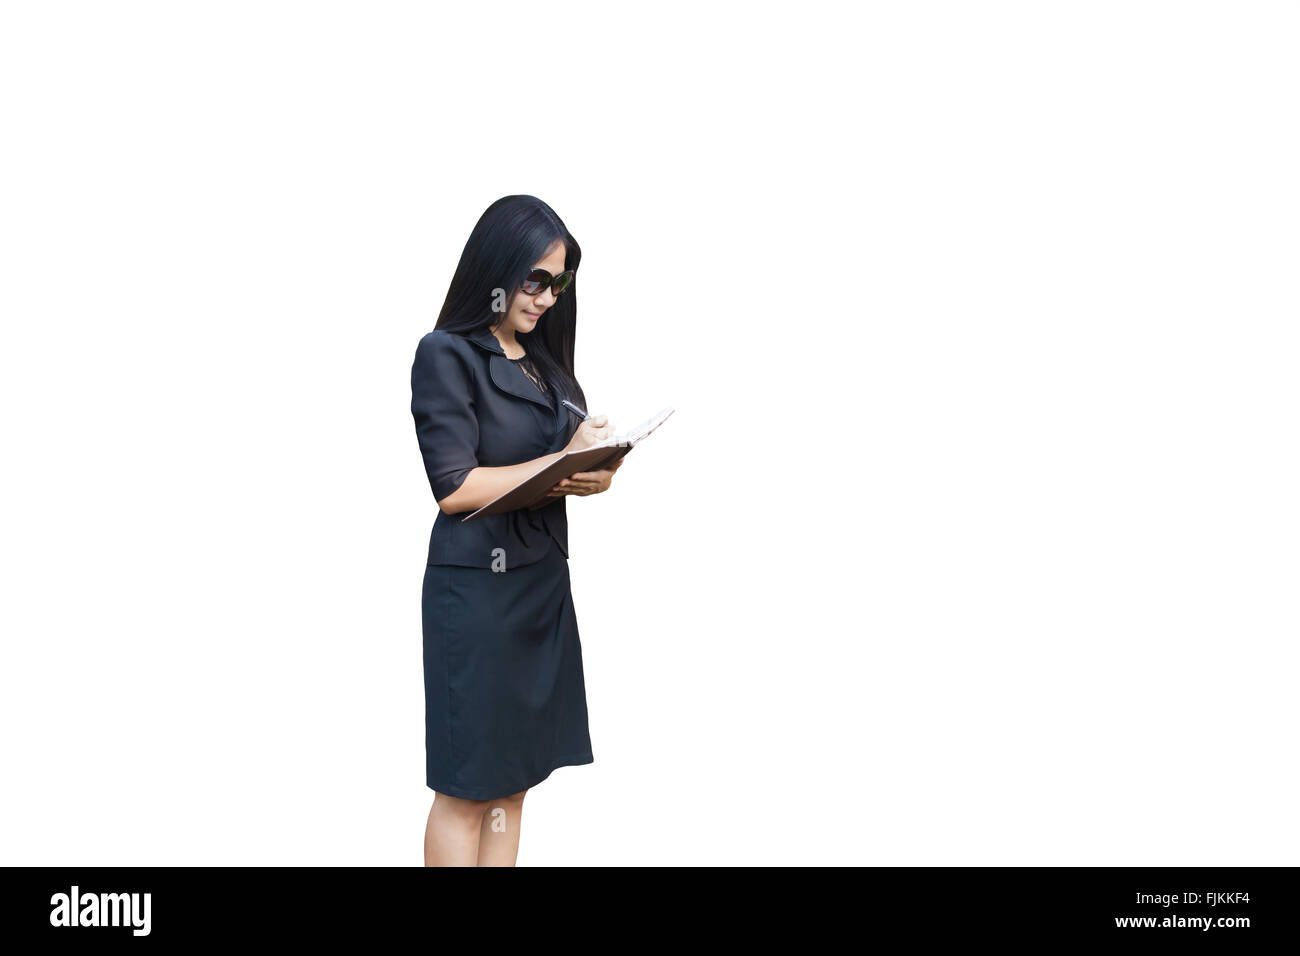 Isolated Asian business women wearing sunglass standing and writing down on note book on white background - Stock Image